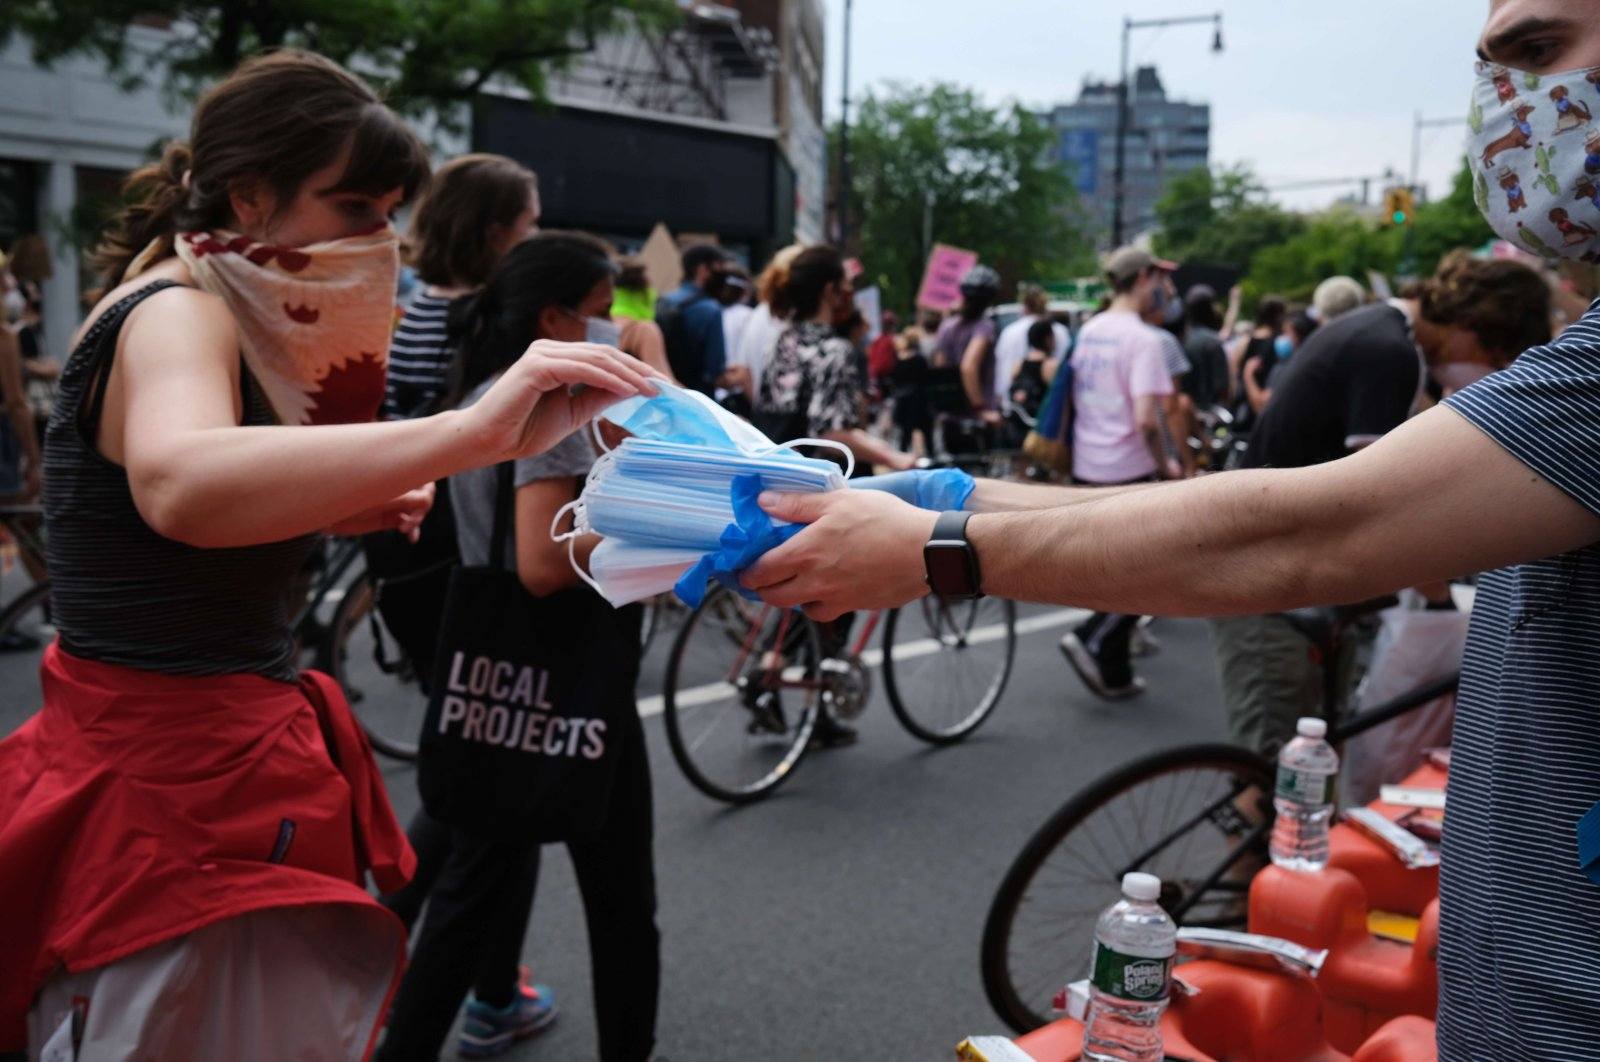 Face masks are handed out as hundreds of protesters march in downtown Brooklyn over the killing of George Floyd by a Minneapolis Police officer on June 5, 2020, in New York City, New York, U.S. (Getty Images/AFP)